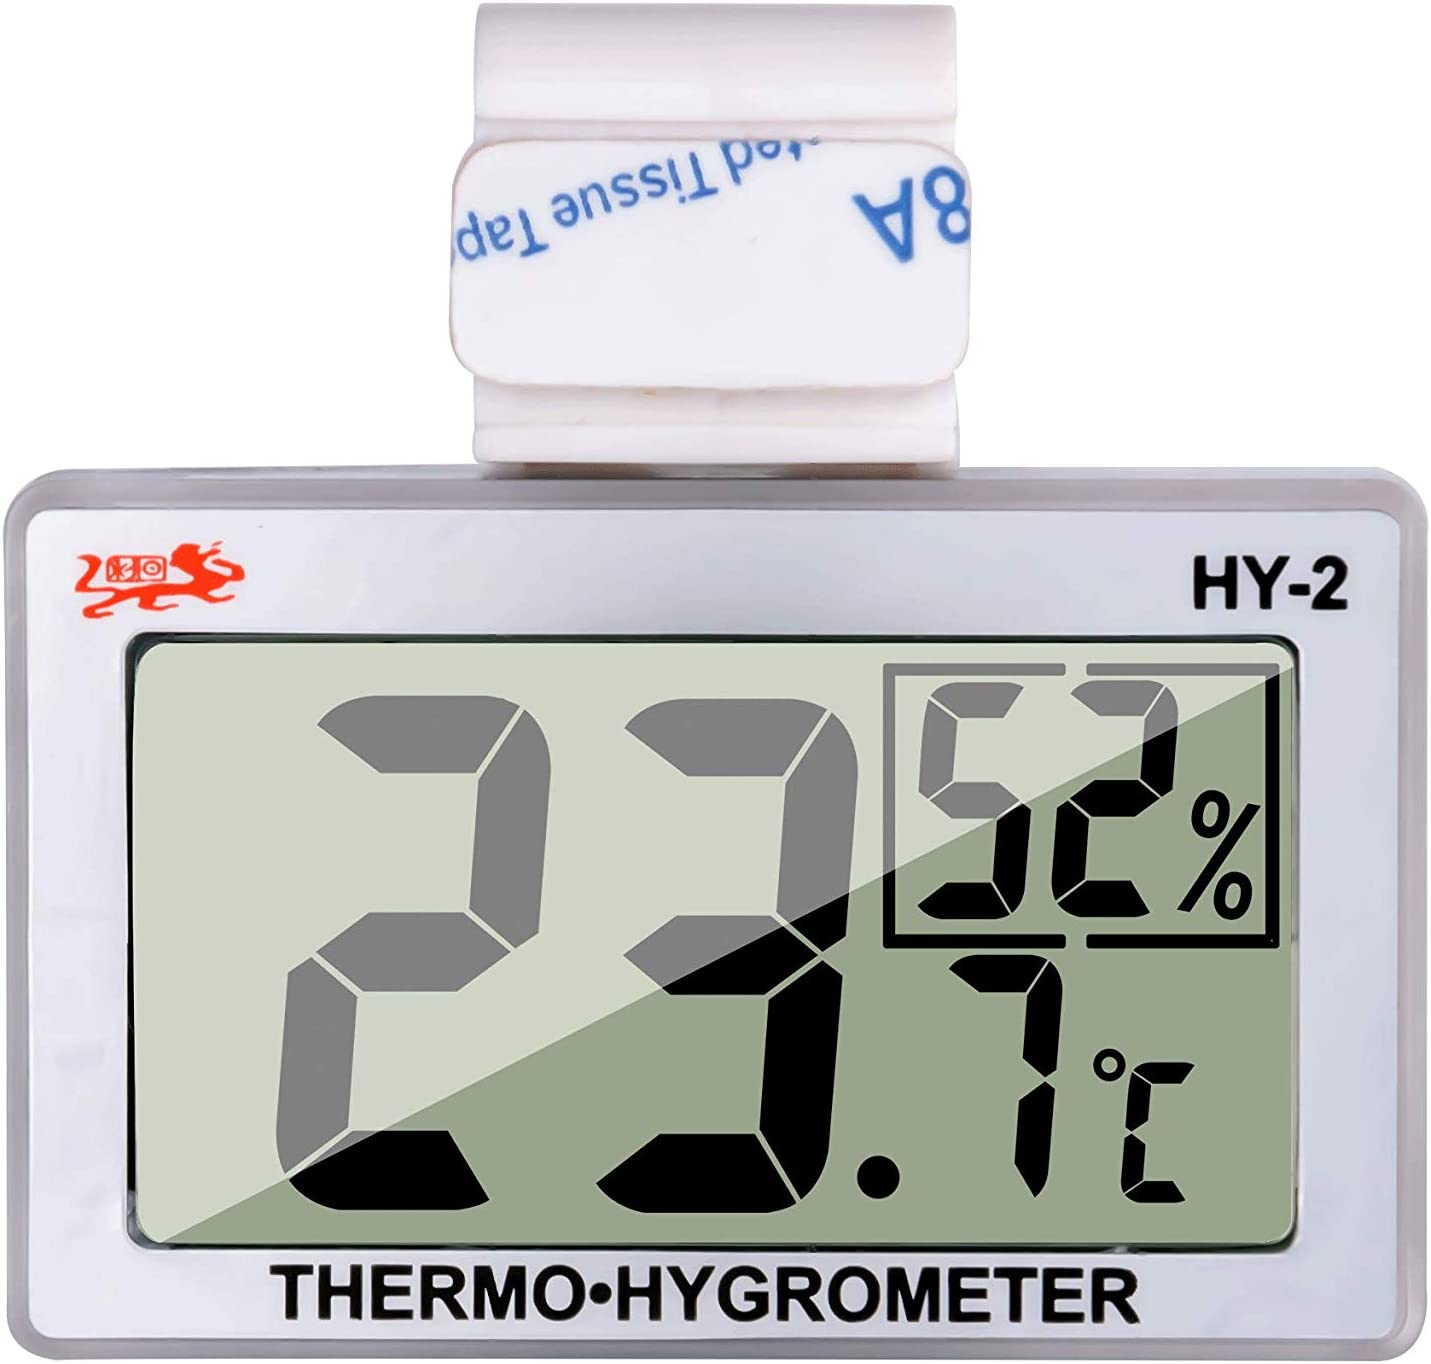 Selling and selling Reptile Thermometer Humidity and Temperature Gauges Max 53% OFF Sensor Repti